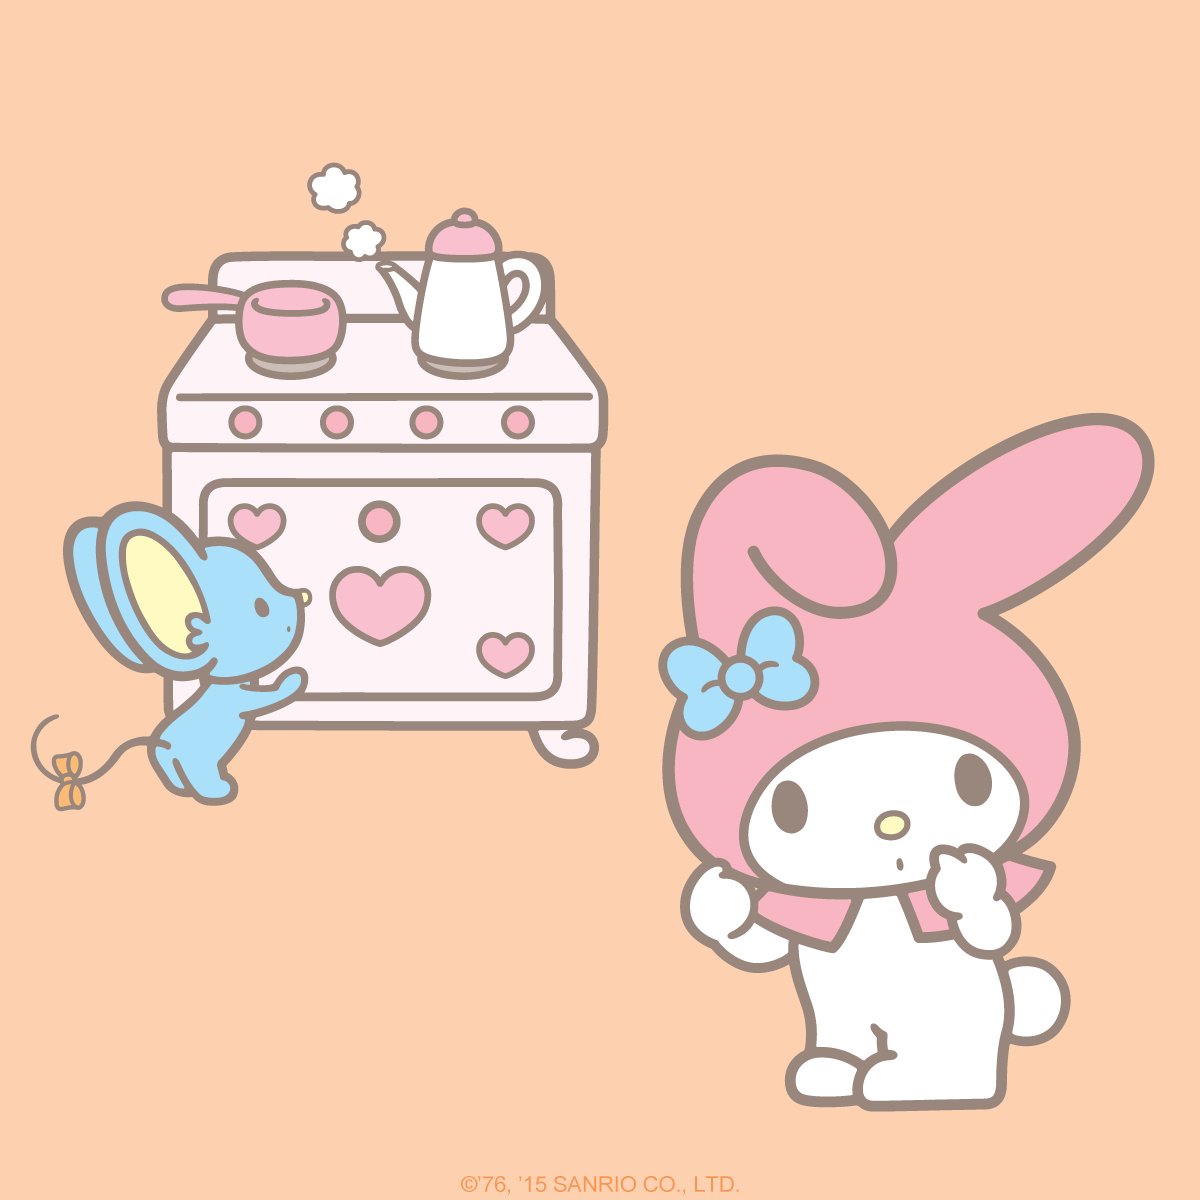 My-Melody-is-getting-ready-for-a-visit-with-friends-What-do-you-think-she-should-cook-for-her-frien-wallpaper-wp4409876